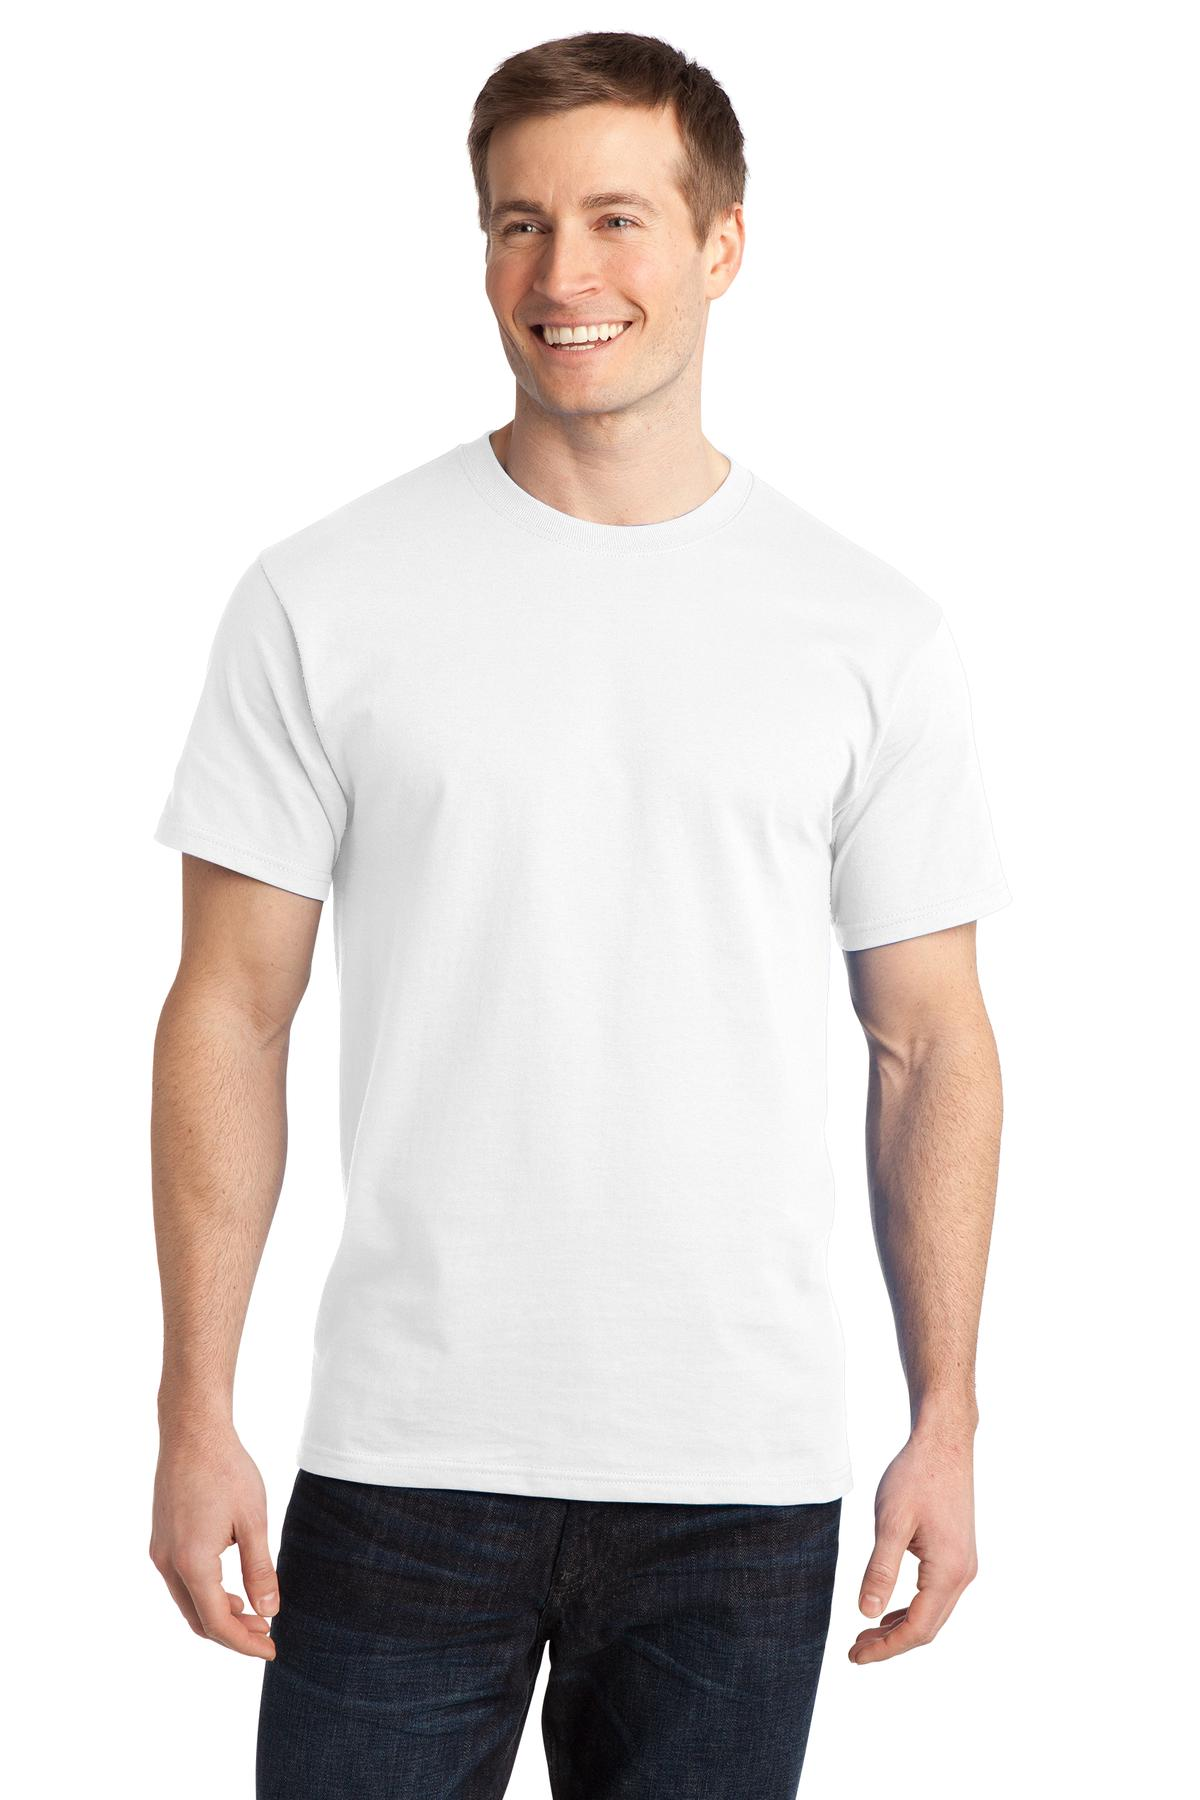 White t shirt company - Port Company Ring Spun Cotton Tee Pc150